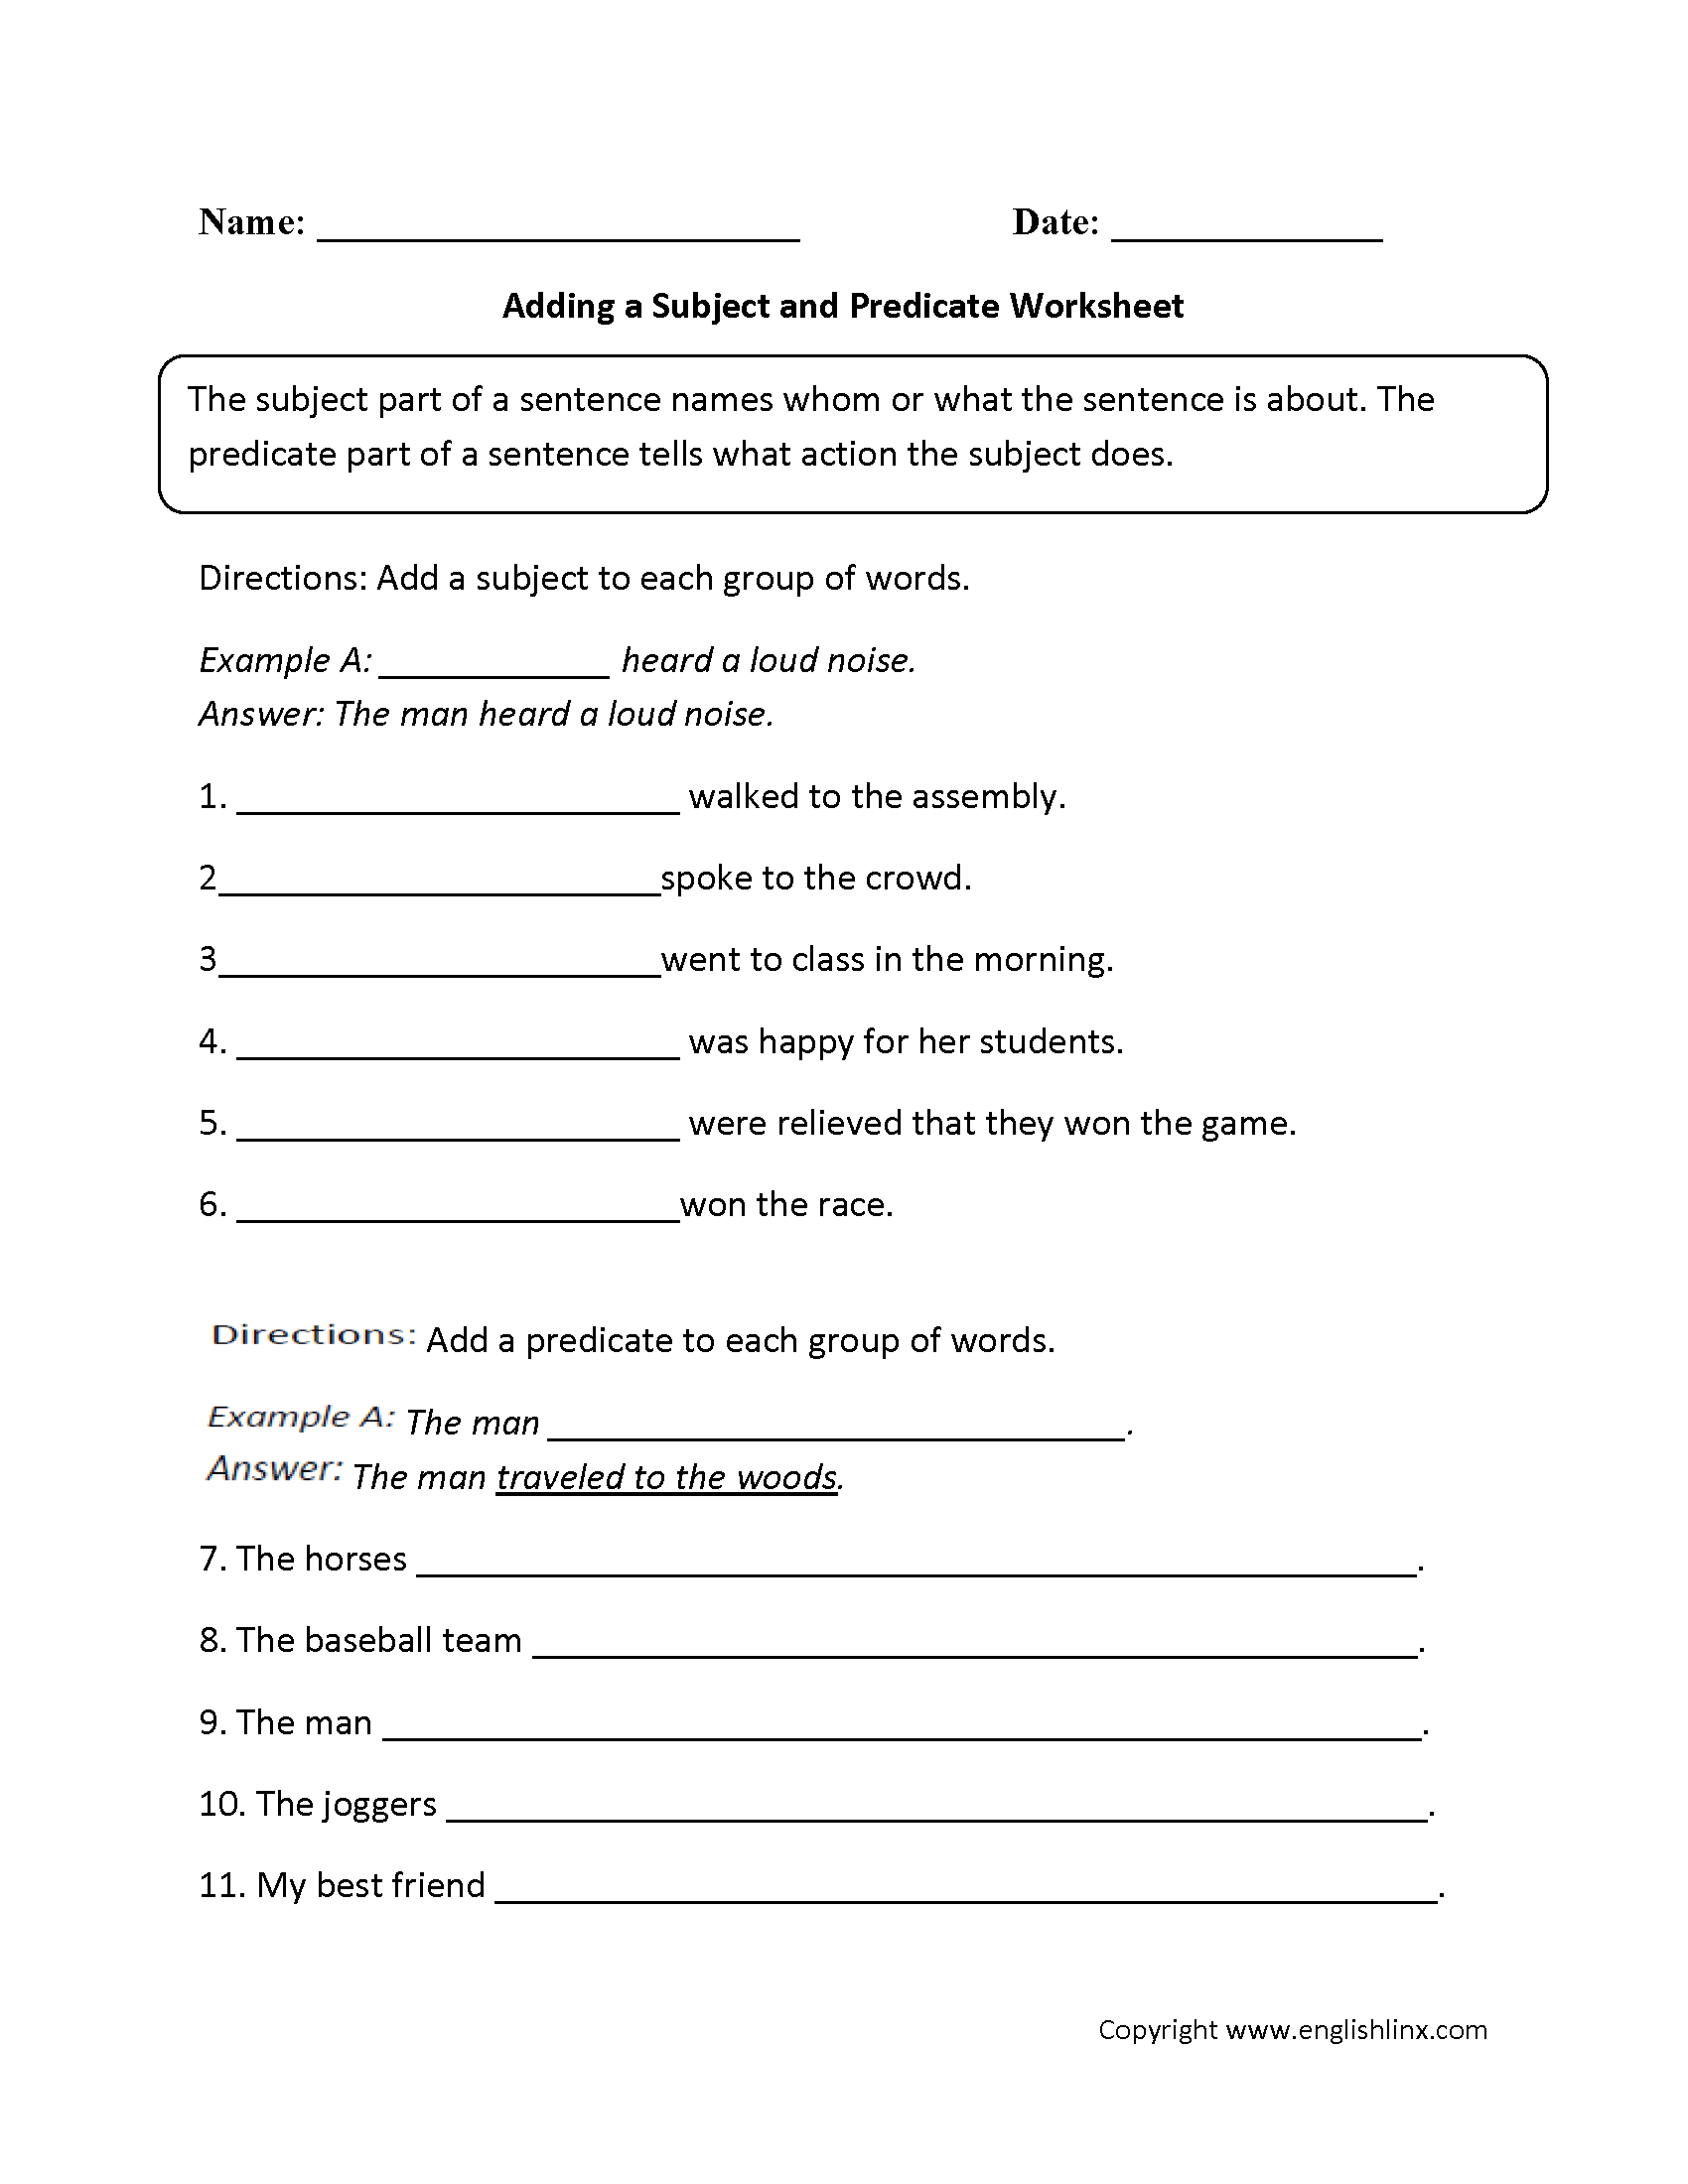 Printables 3rd Grade Subject And Predicate Worksheets englishlinx com subject and predicate worksheets adding a worksheet